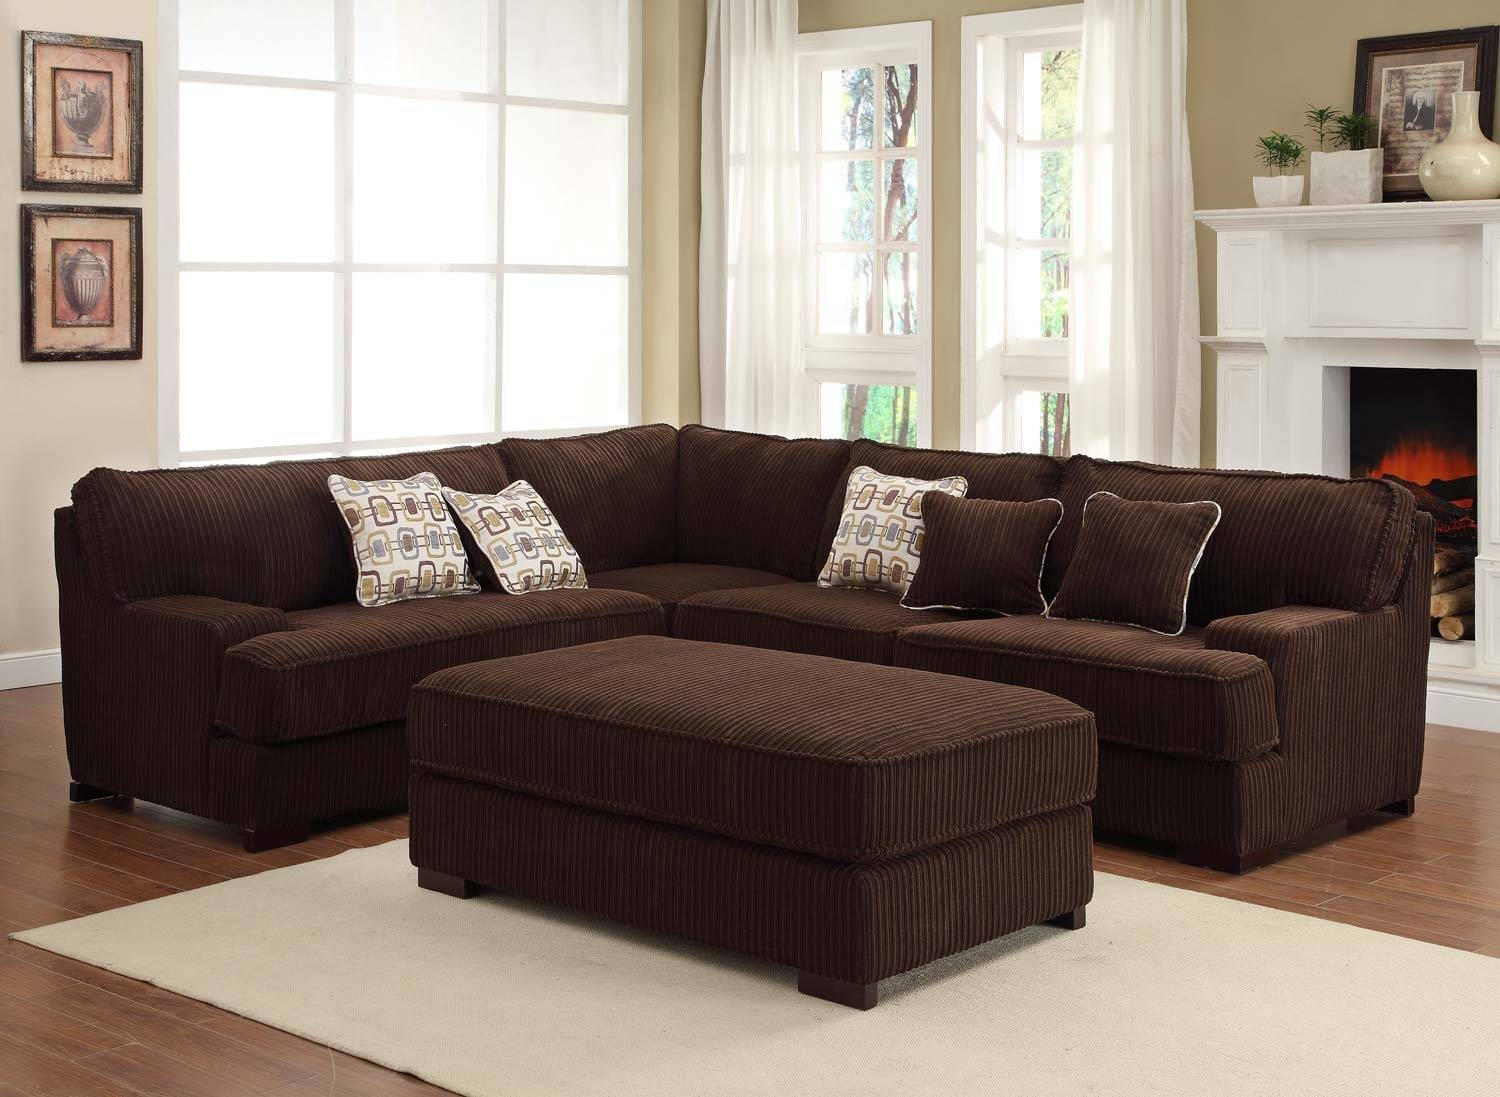 Homelegance Minnis Sectional Sofa Set - Chocolate U9759Ch-Sect throughout Chocolate Brown Sectional Sofa (Image 20 of 30)